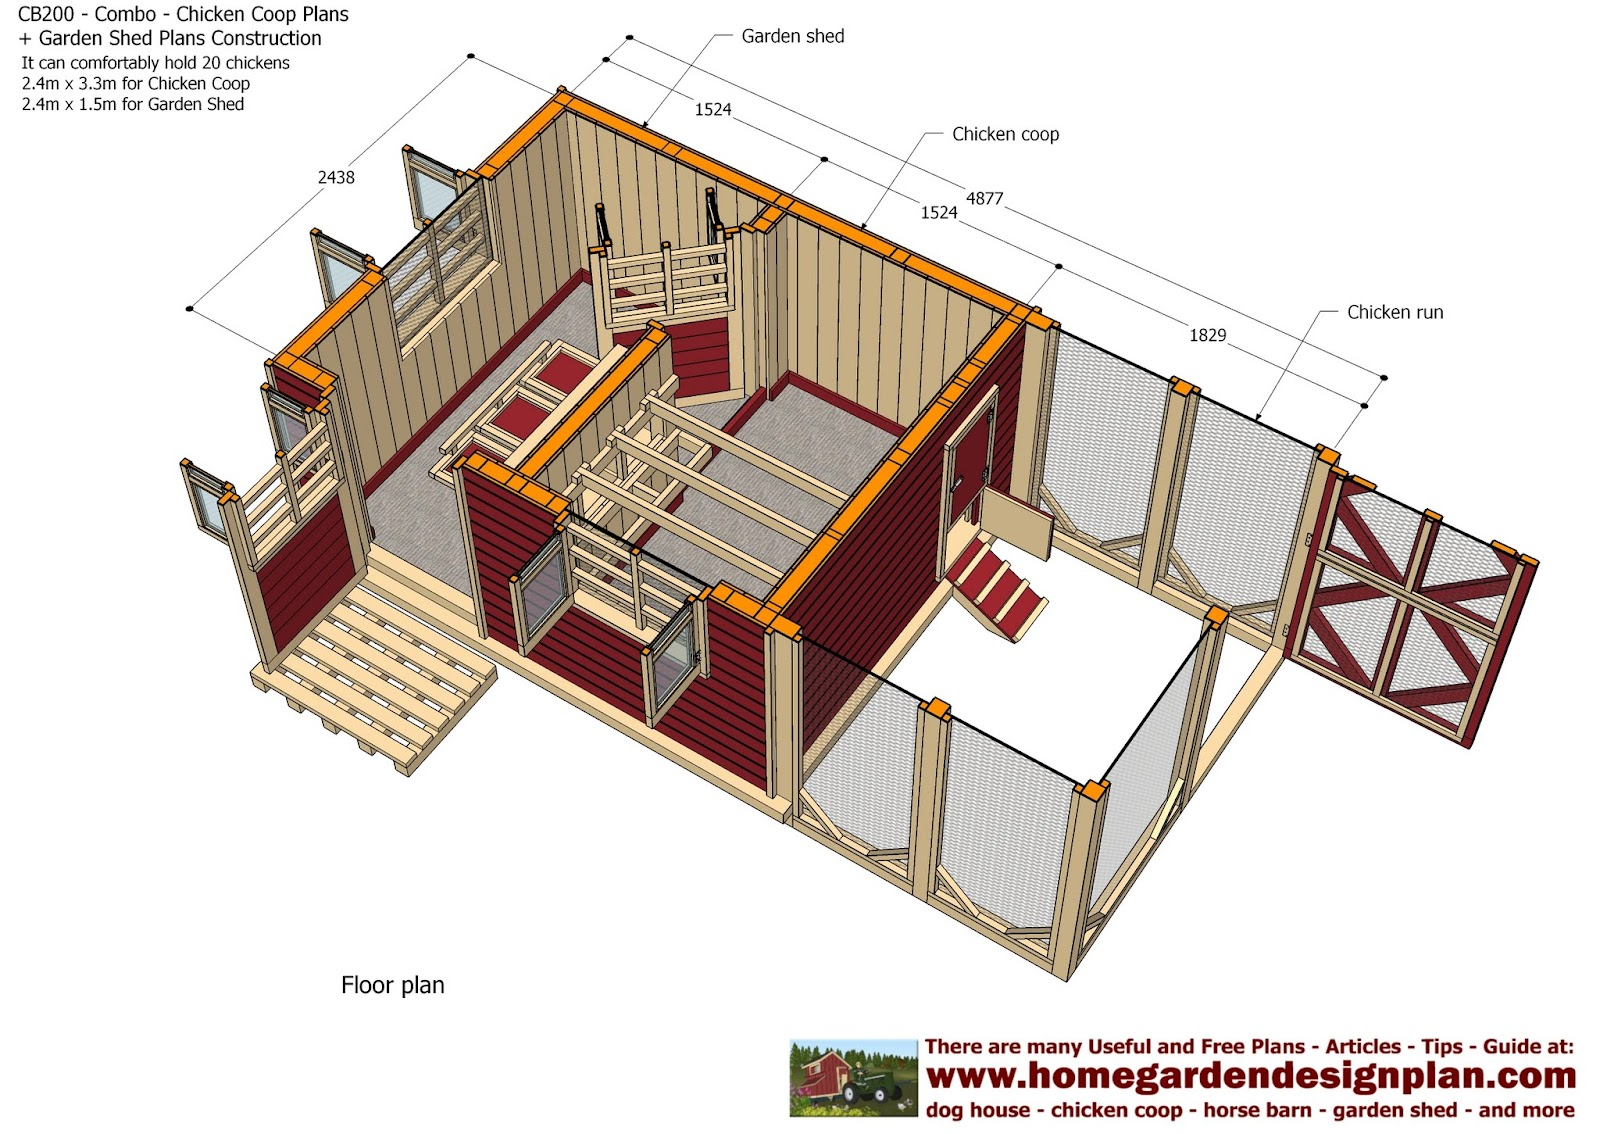 Home garden plans cb200 combo plans chicken coop for Home construction plans